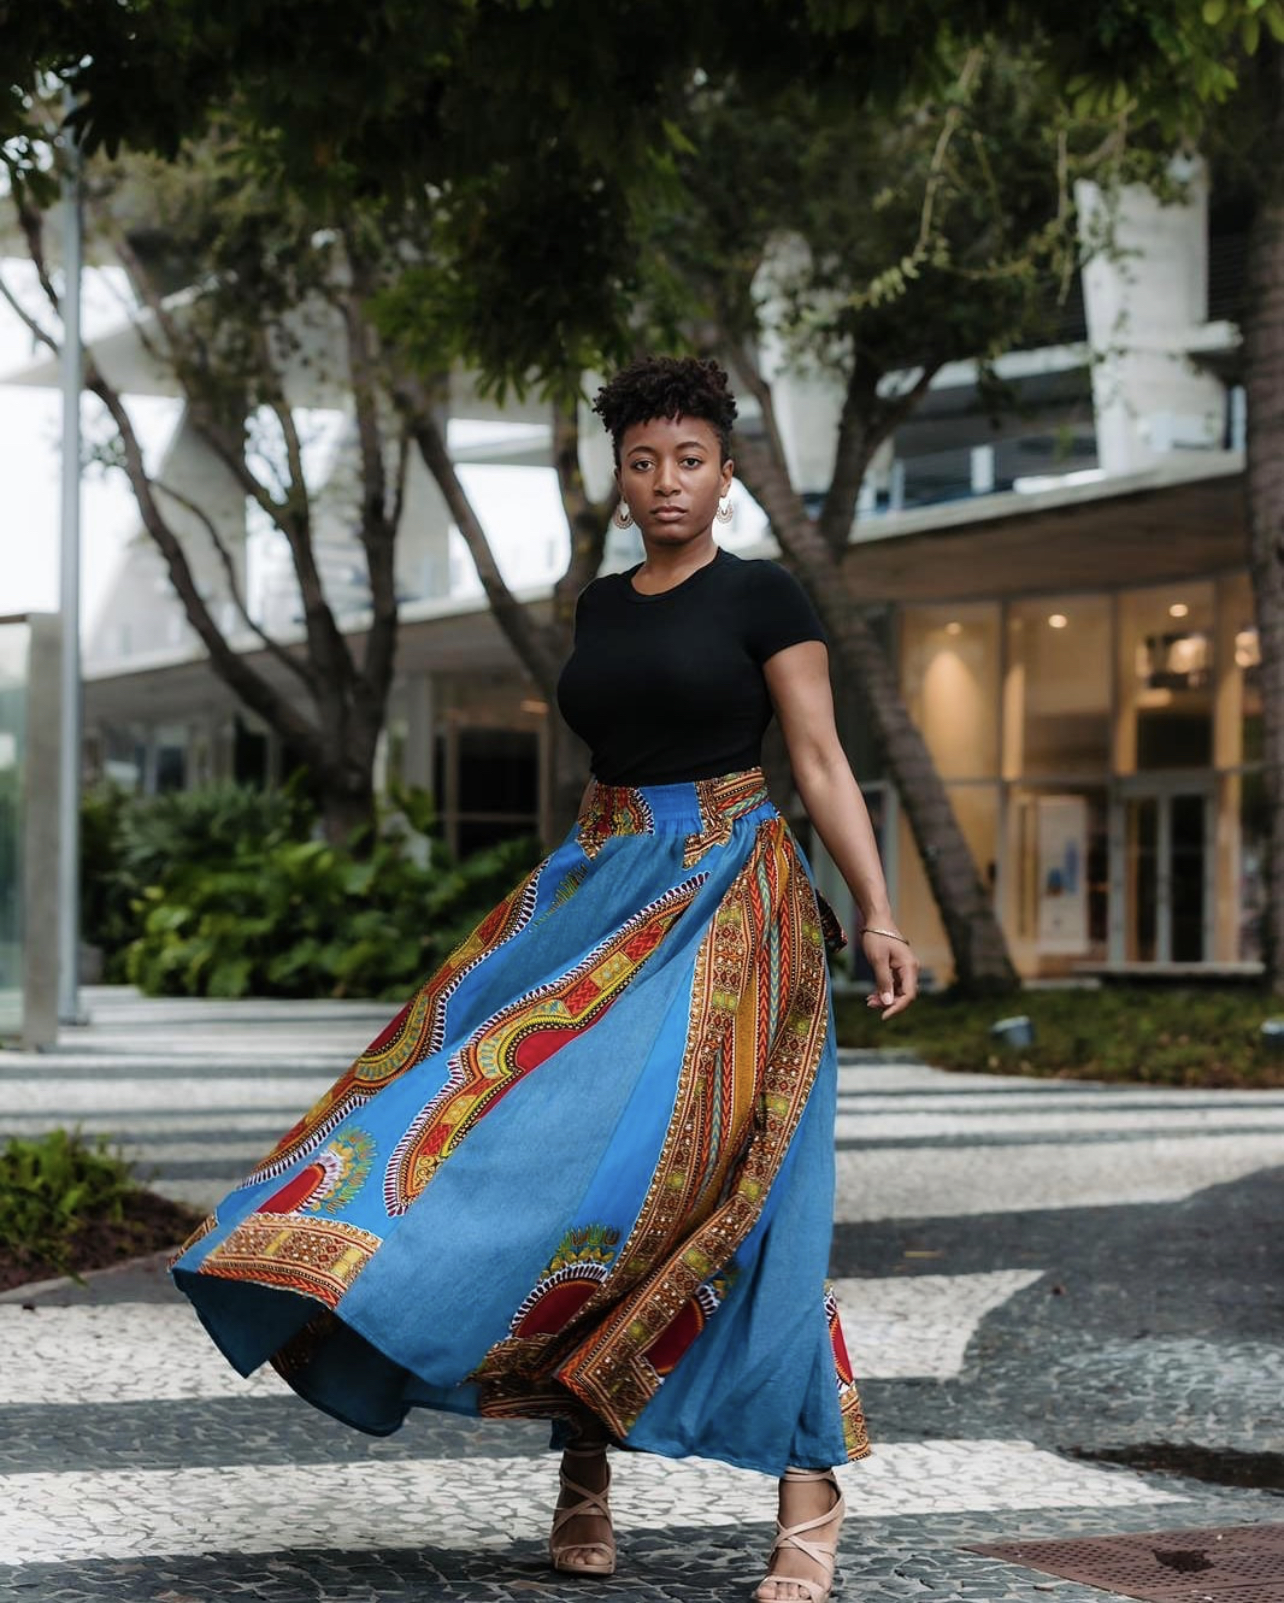 Born and raised in London, UK to a Seychellois mother and a Haitian father, Anita has had an affinity for traveling, history, and cultures from a young age.